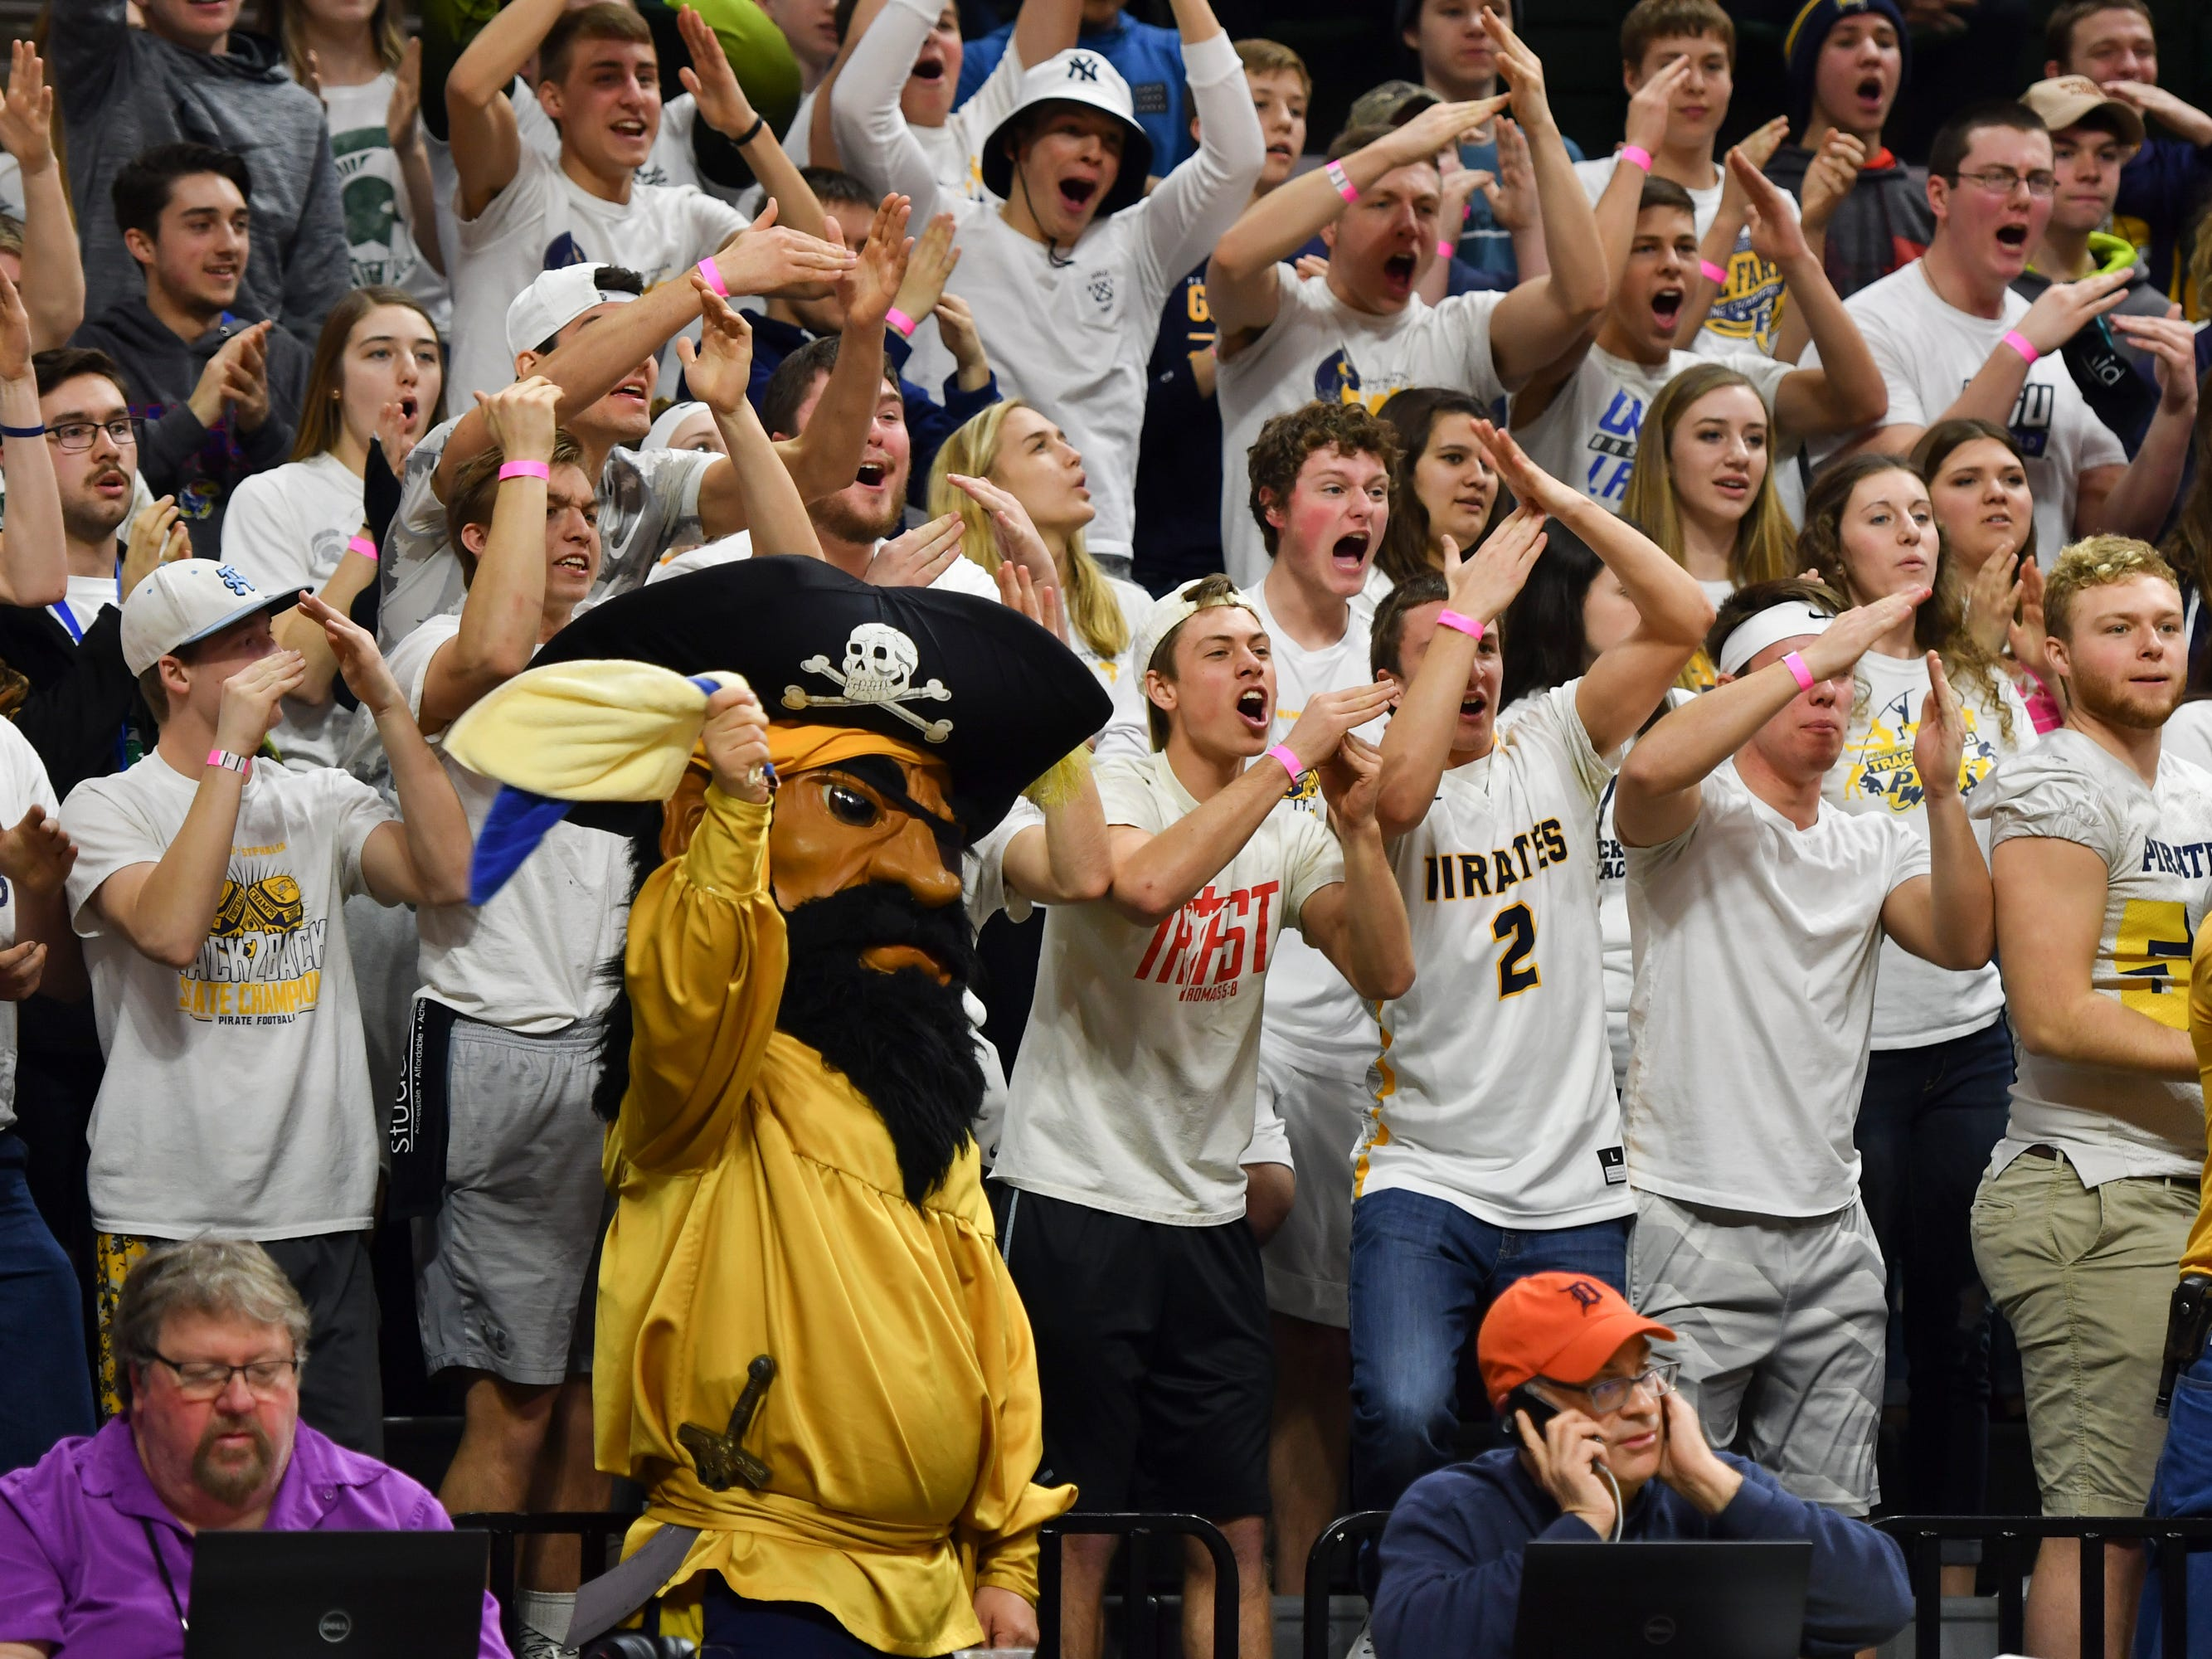 The P-W student section calls for an Erie-Mason technical after a scuffle below the baseline Thursday, March 14, 2019, during the MHSAA Div. 3 state semifinal at the Breslin Center in East Lansing.   P-W earned its berth in the state final beating Erie-Mason 60-45.